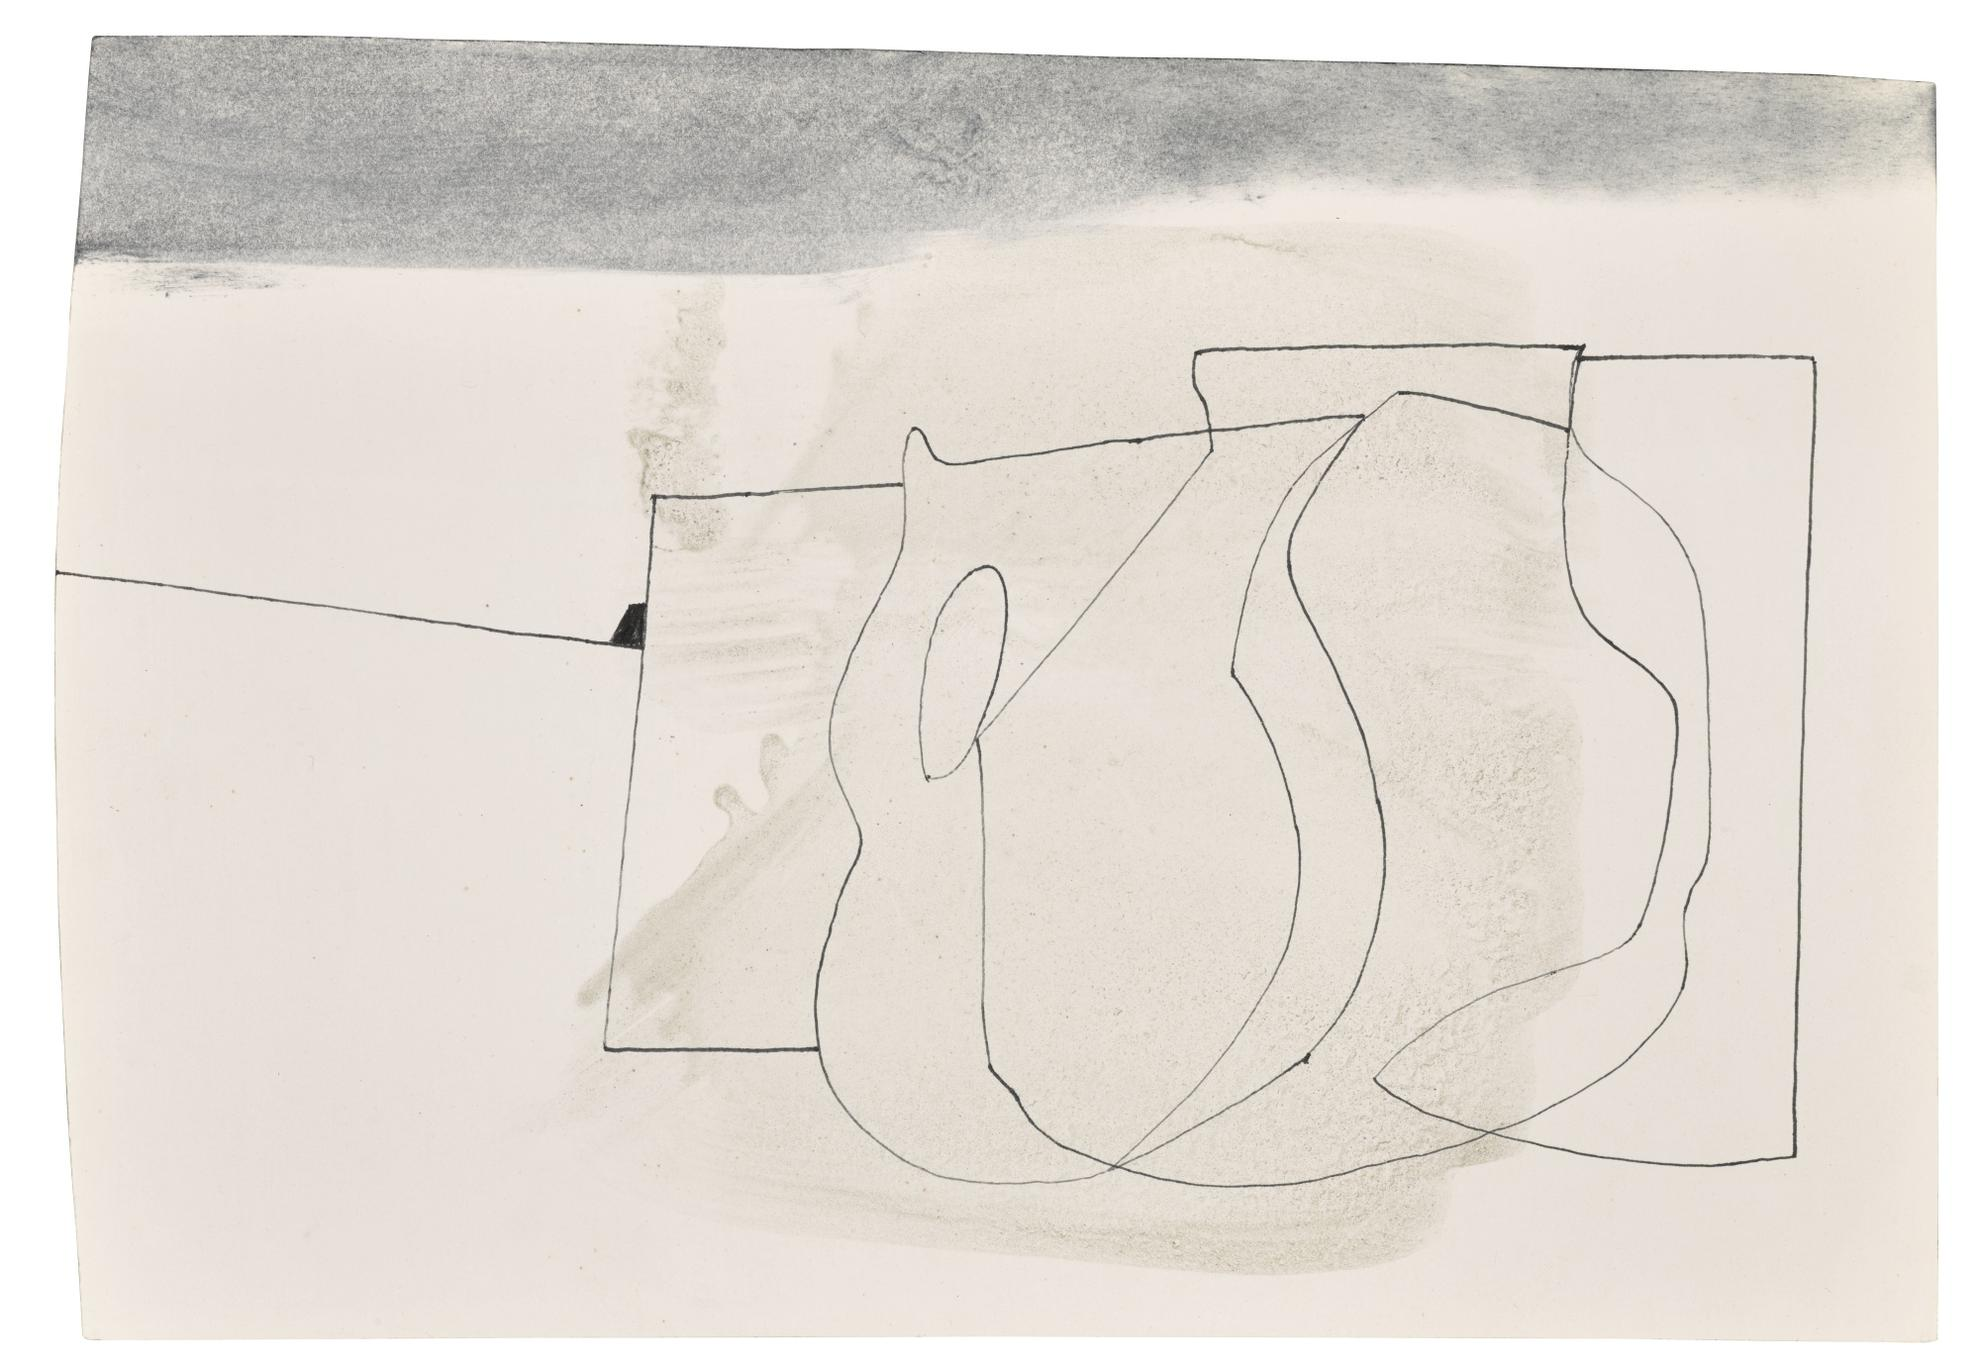 Ben Nicholson-Mch 13 78 (Sculptured Forms One)-